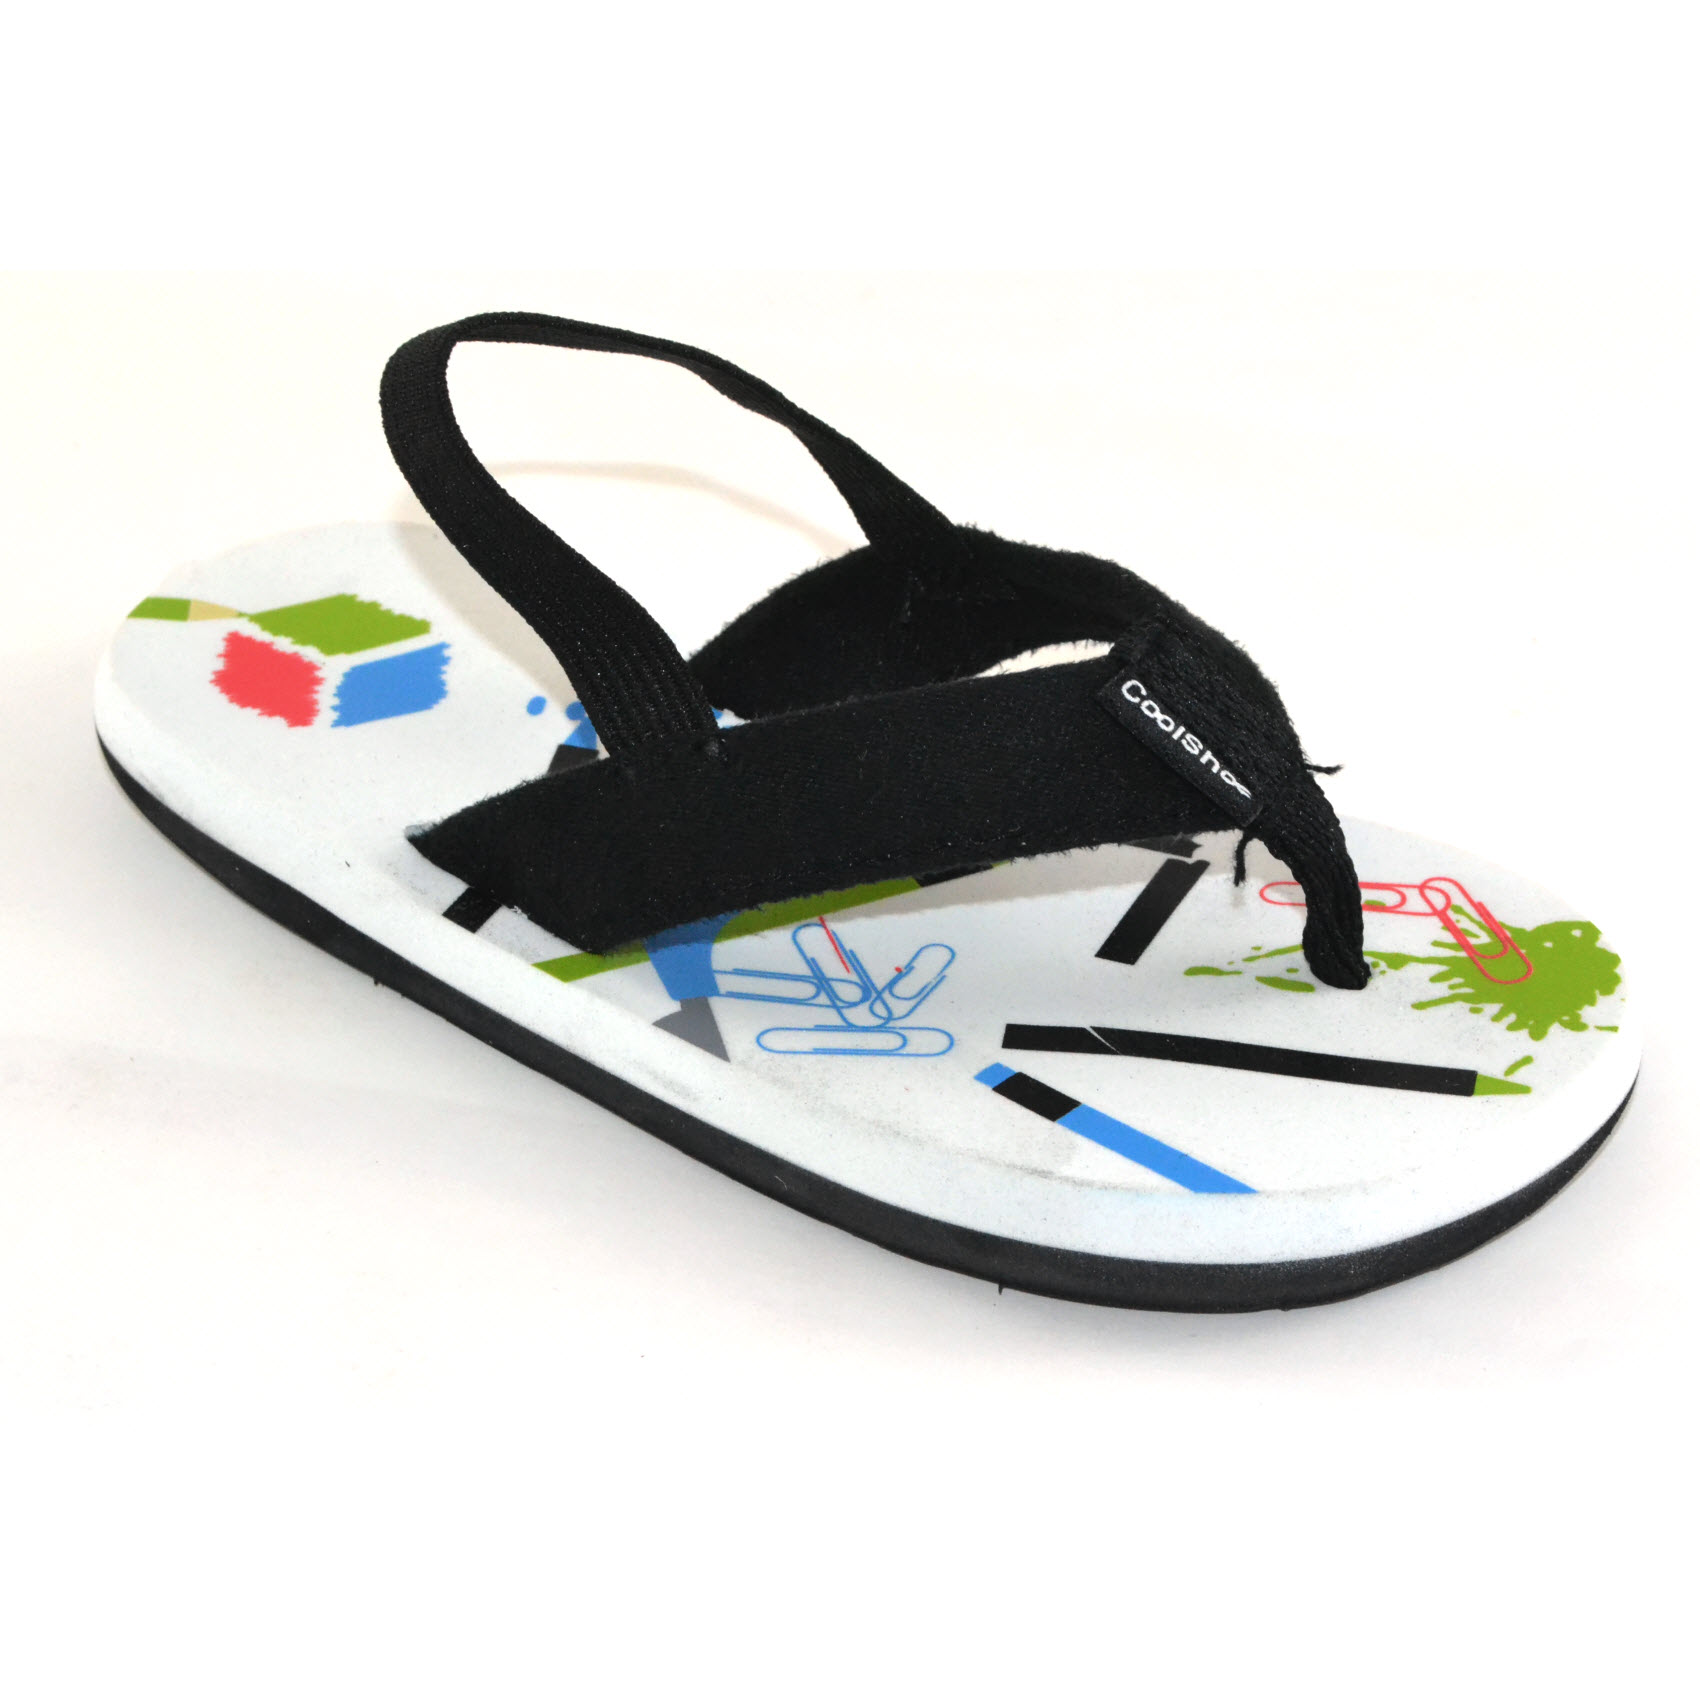 7a2589fd5855 Sentinel Cool Shoe School Boy Kids Flip Flop Sandals Summer Slippers  Childrens Sizes